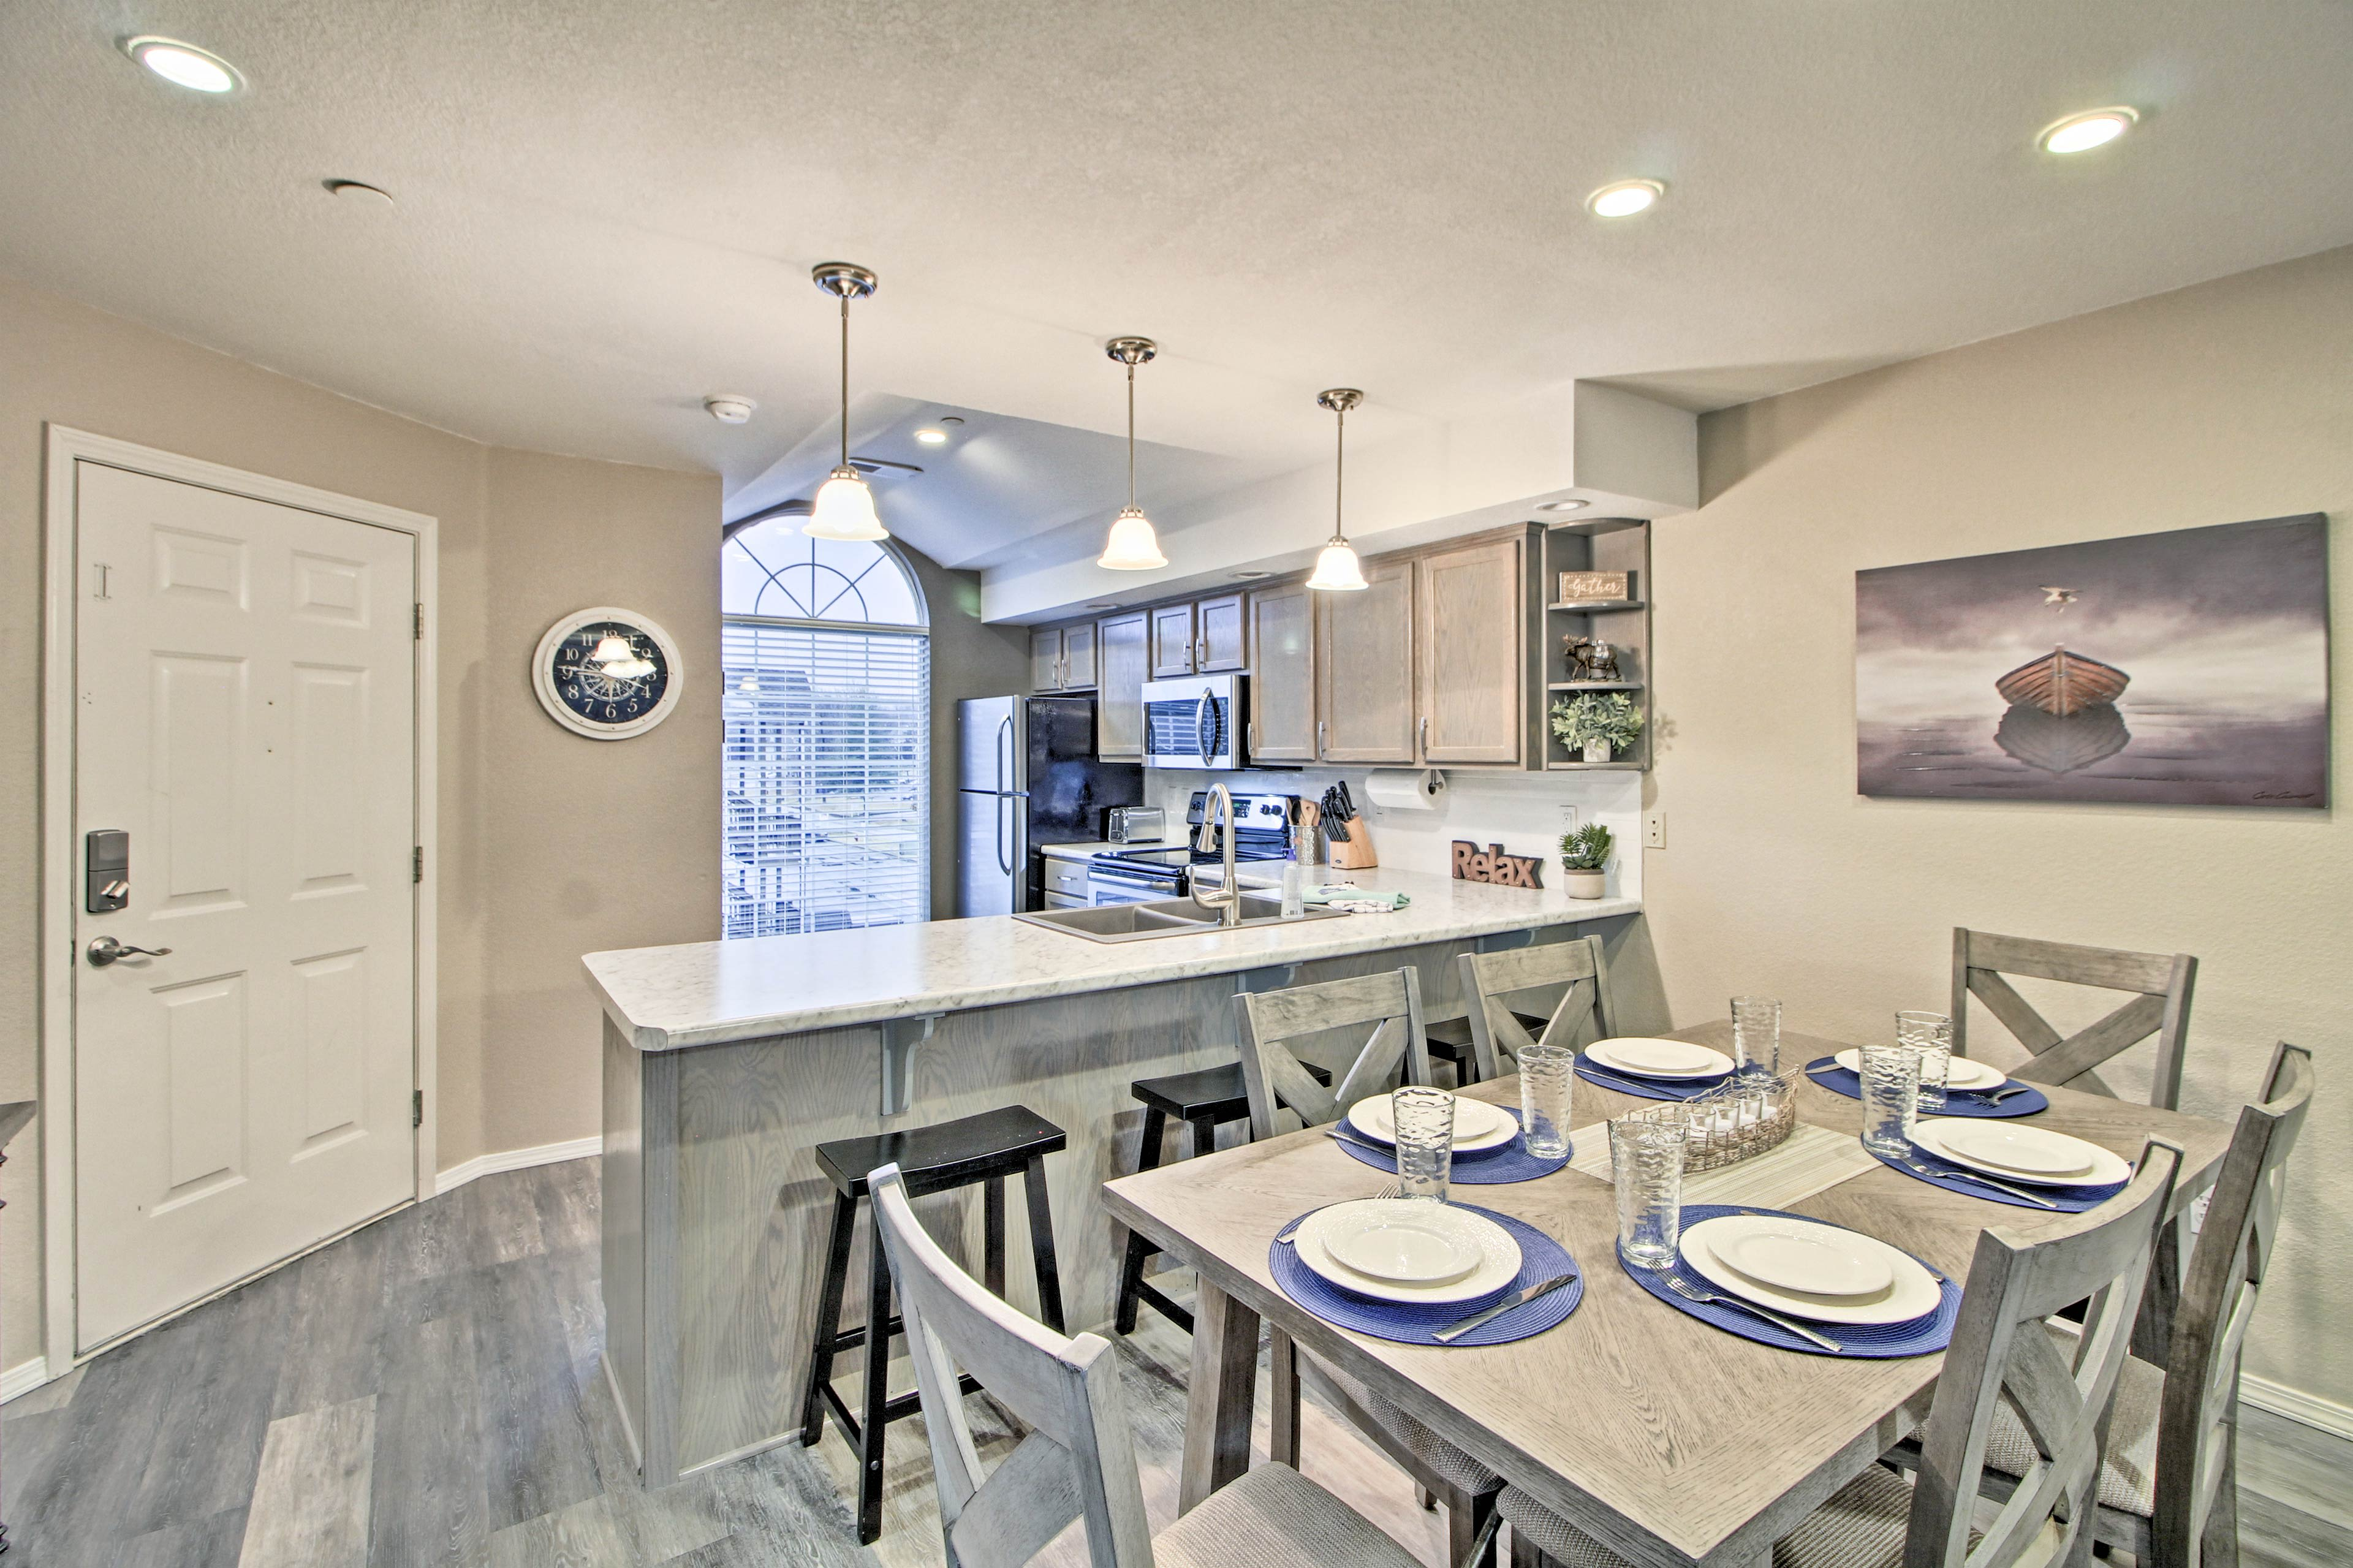 Your group of 7 will enjoy 1,150 square feet of newly remodeled living space.